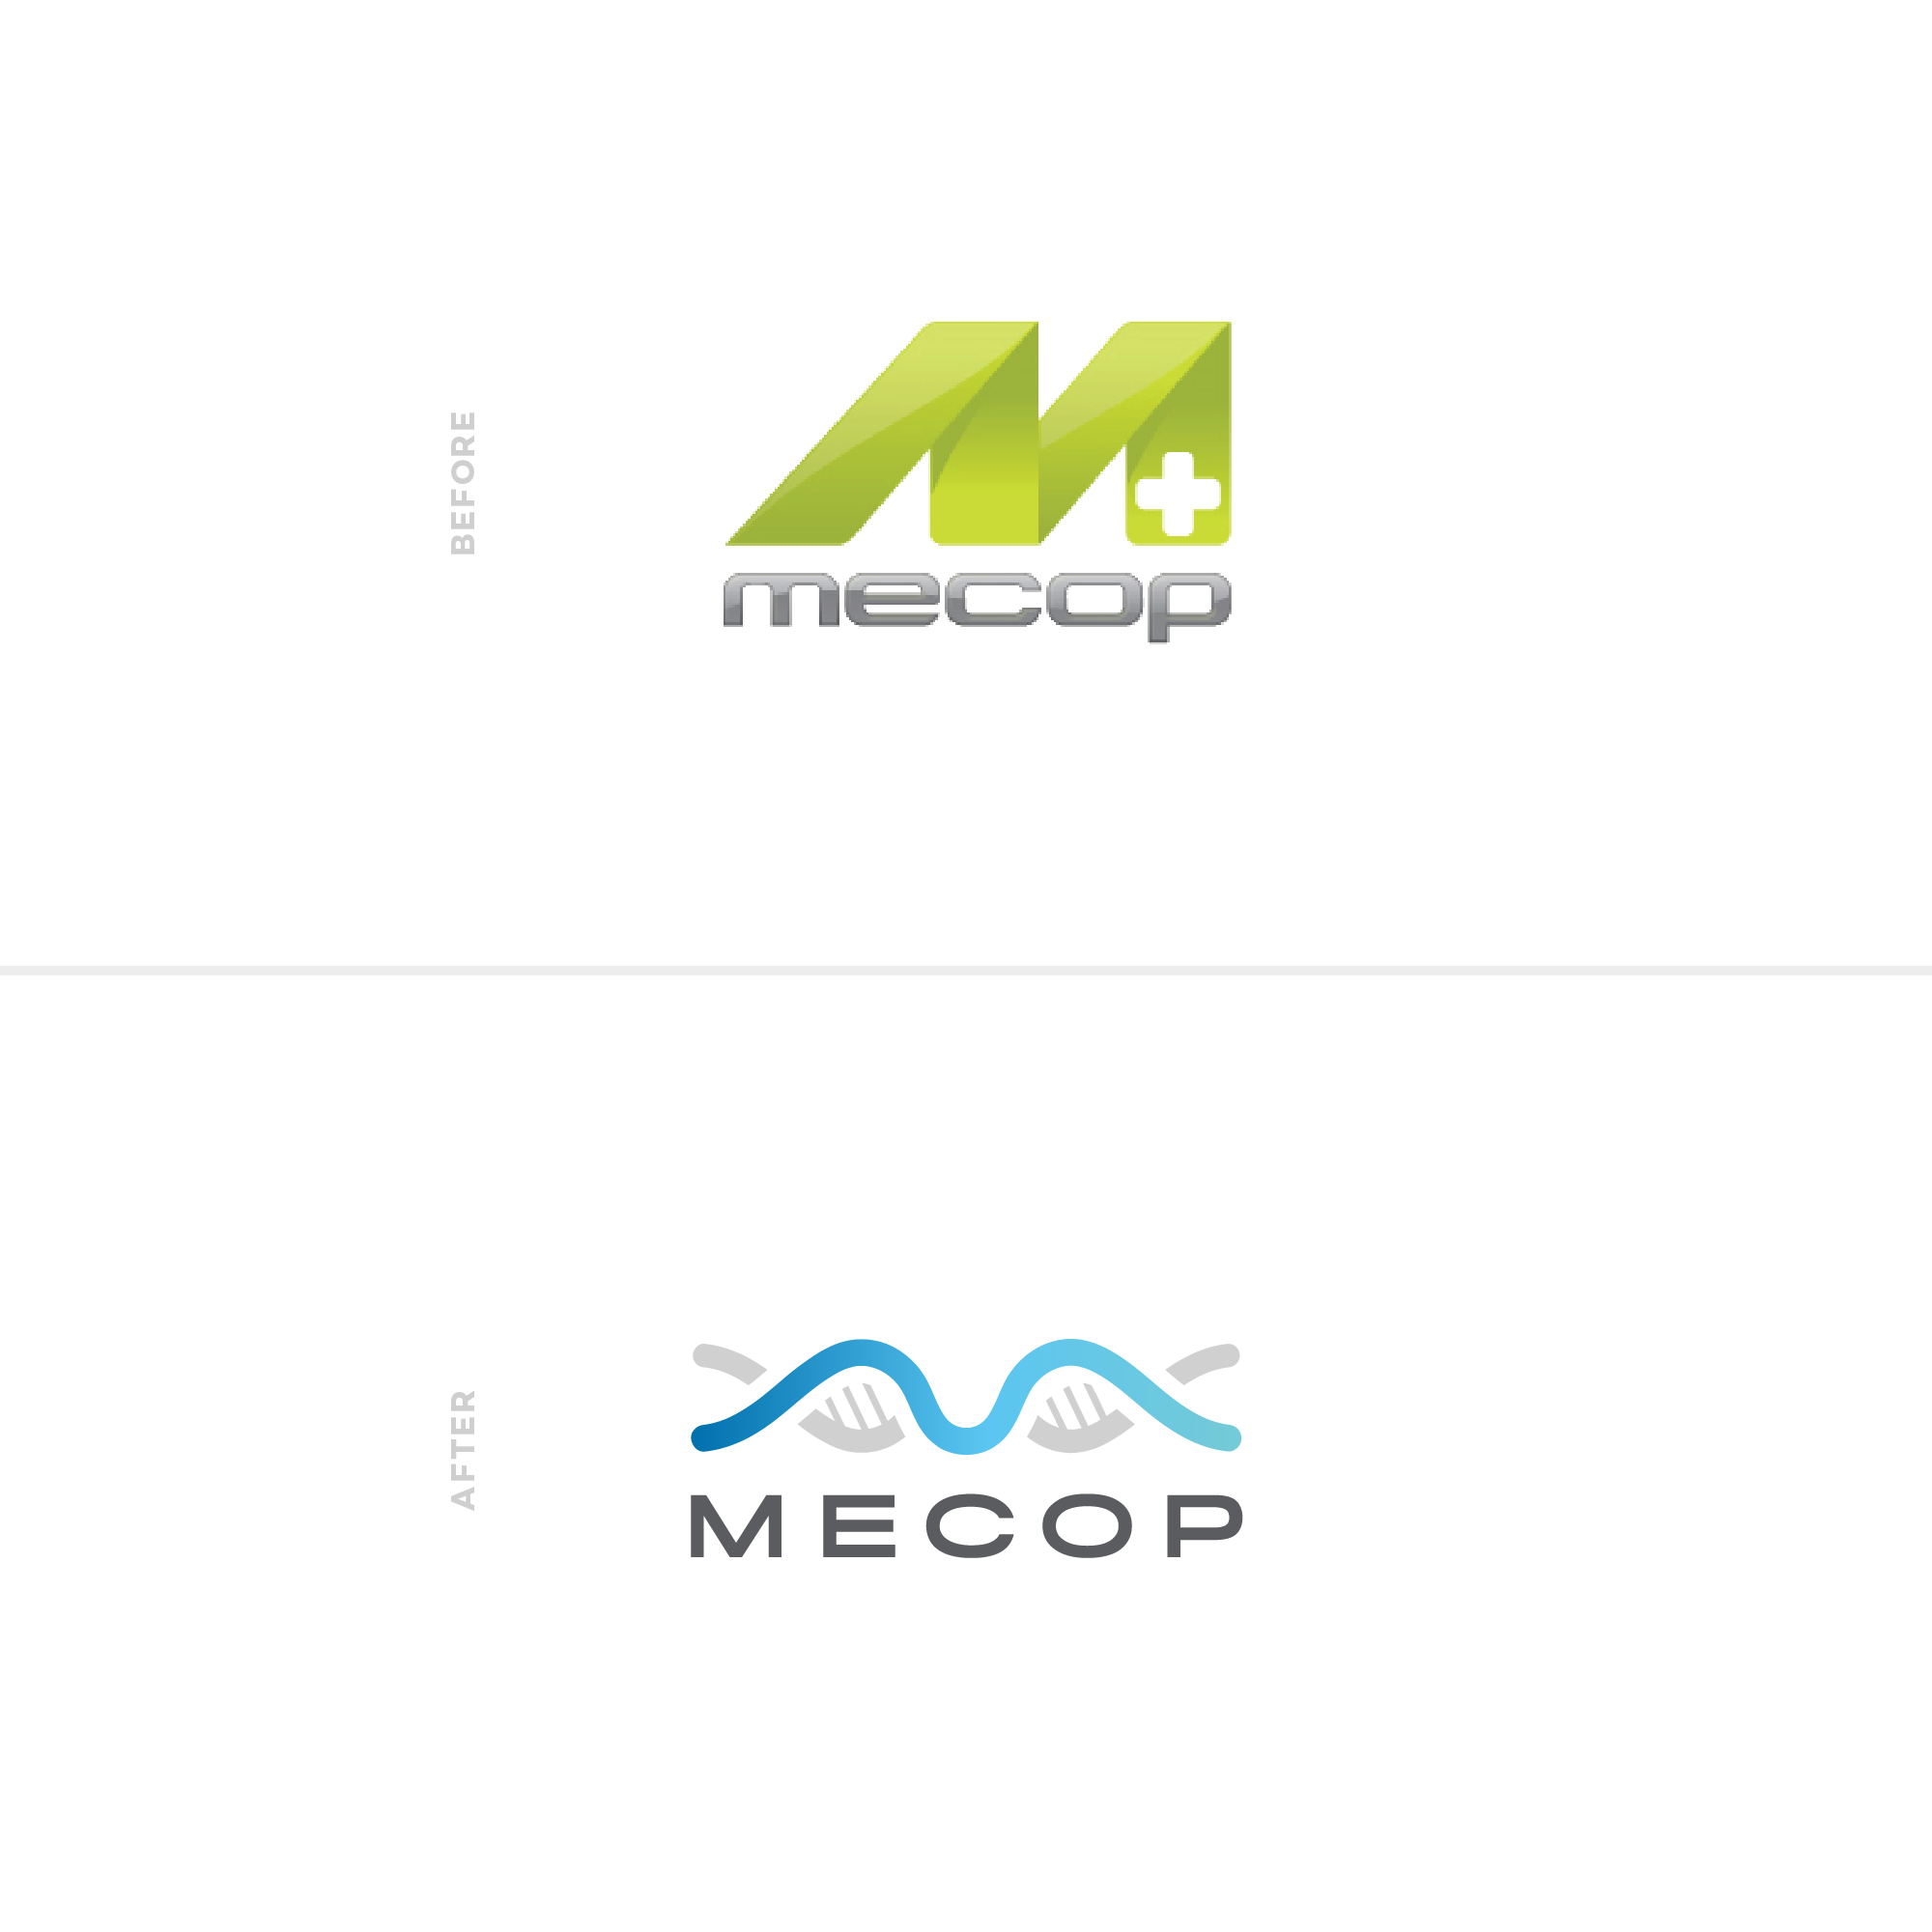 MECOP | Before & After